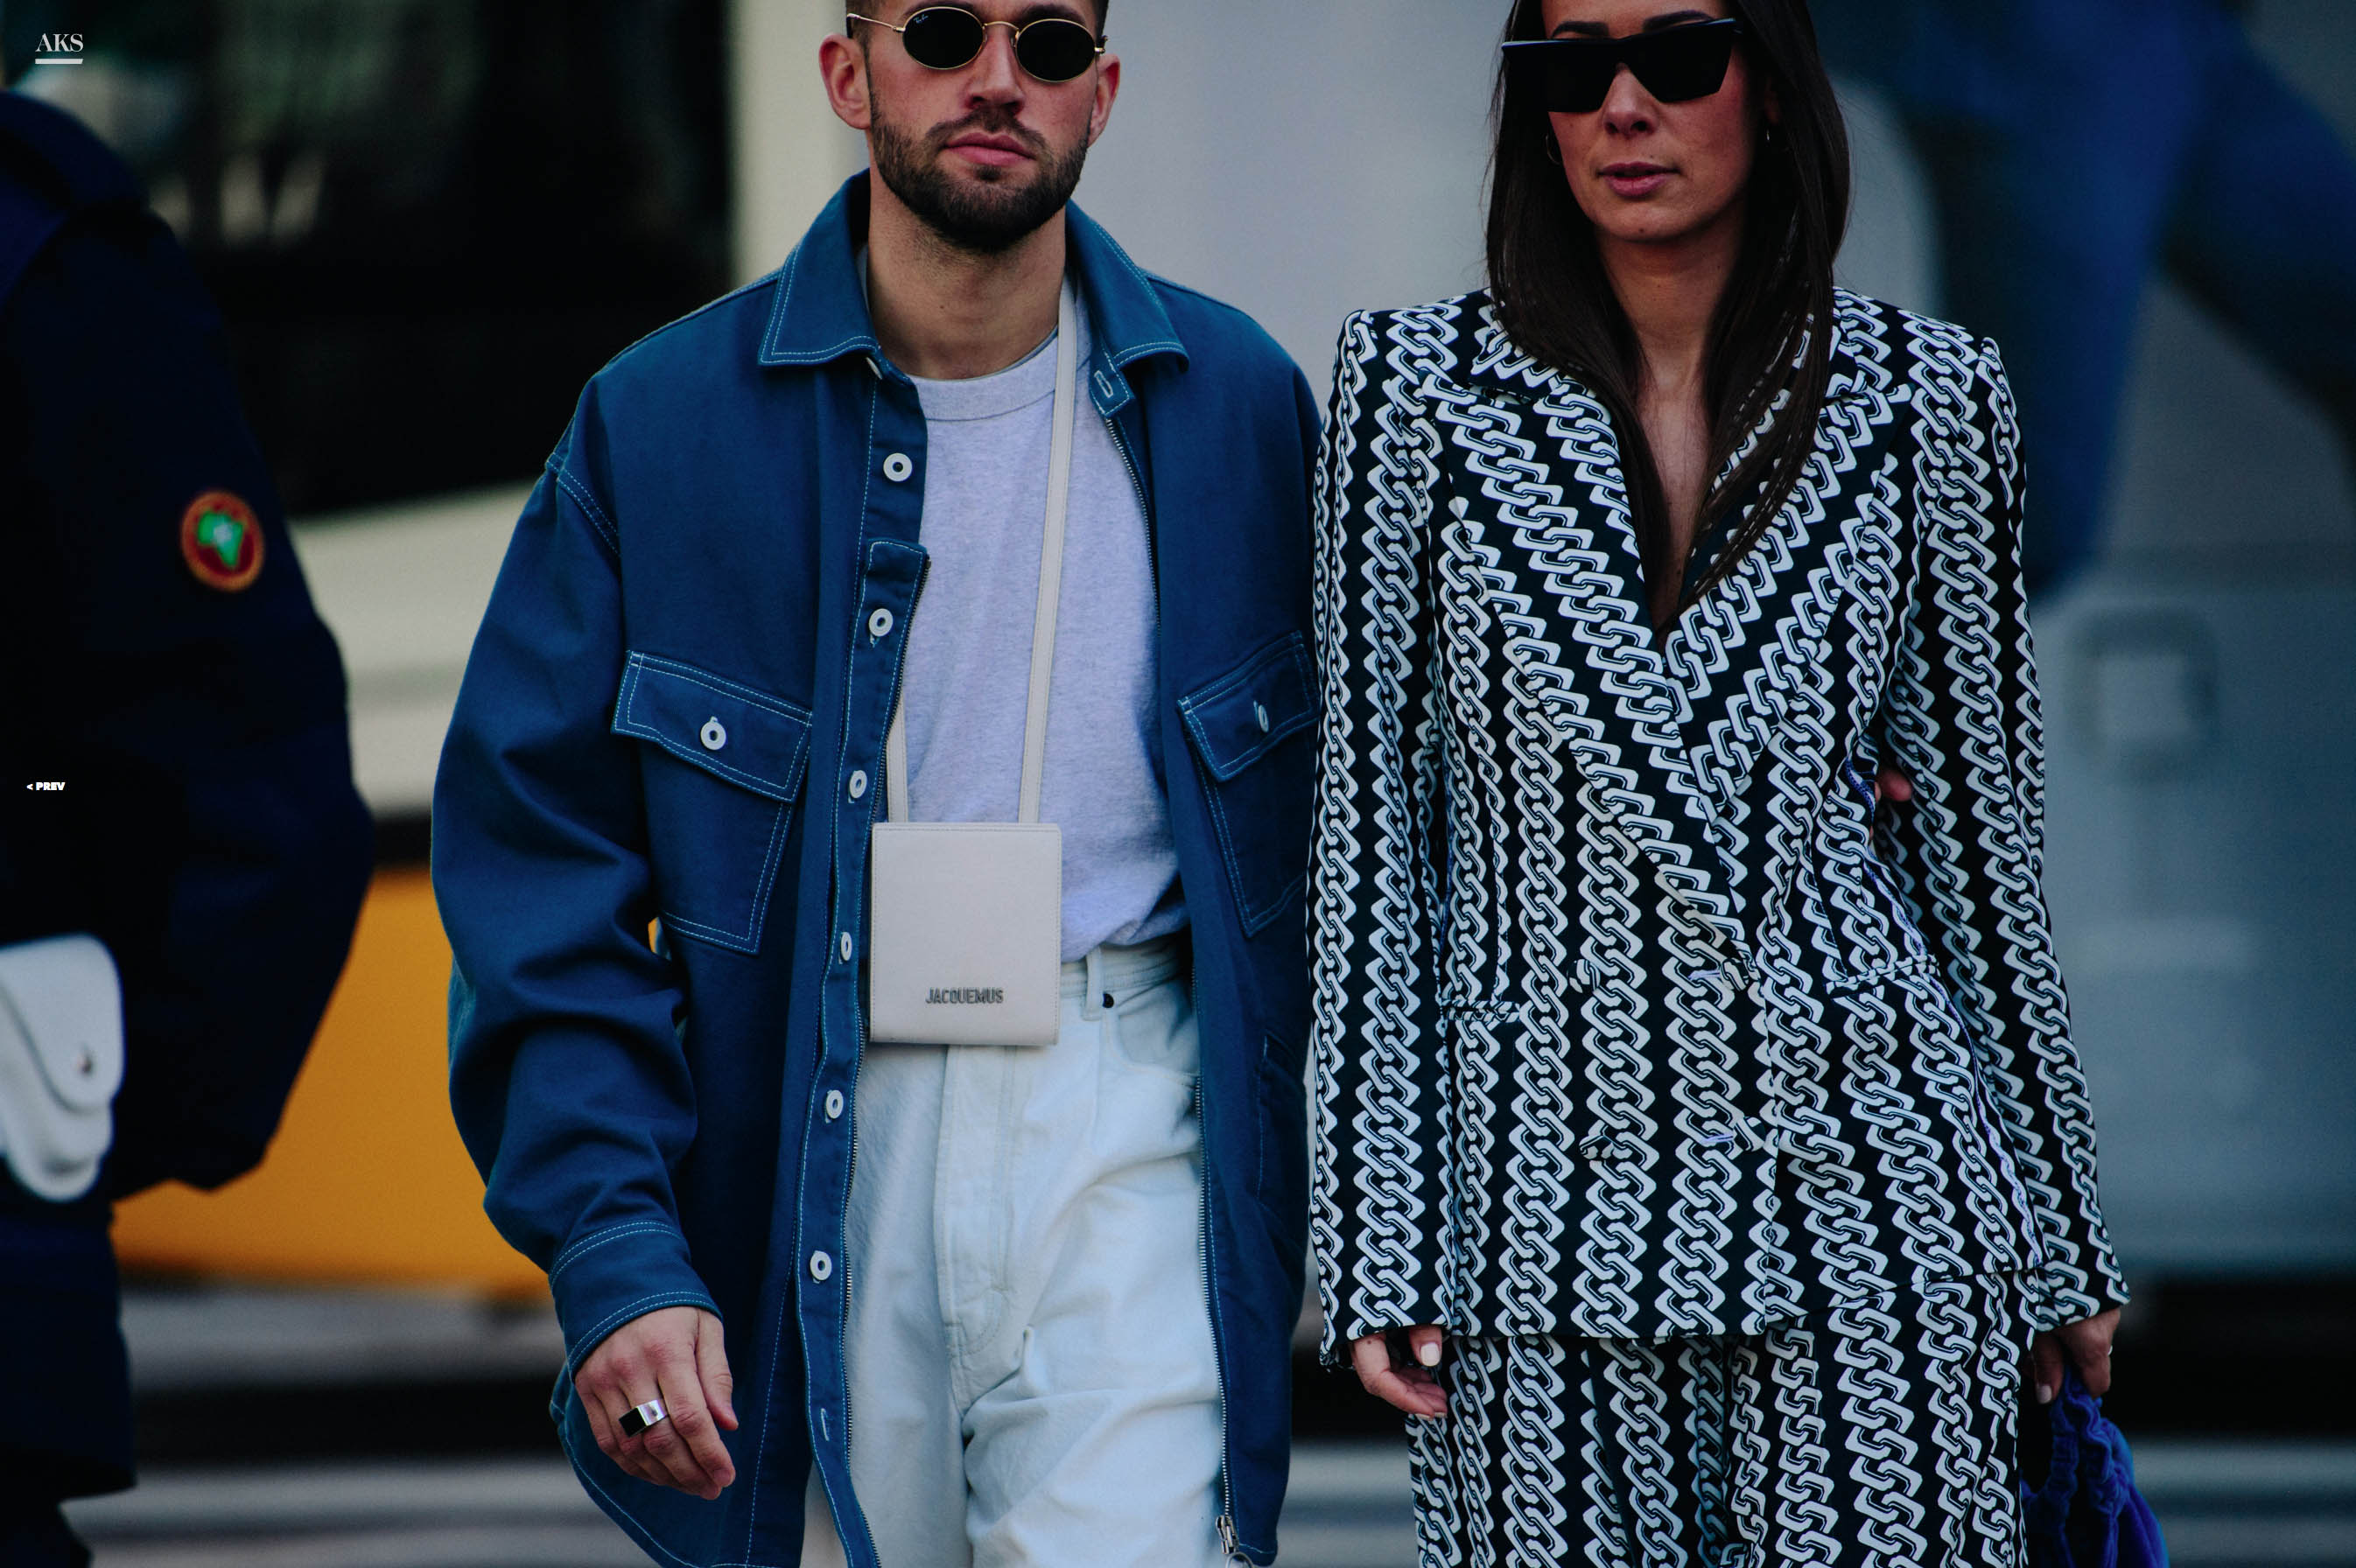 aks street style pictures couple adam katz siding